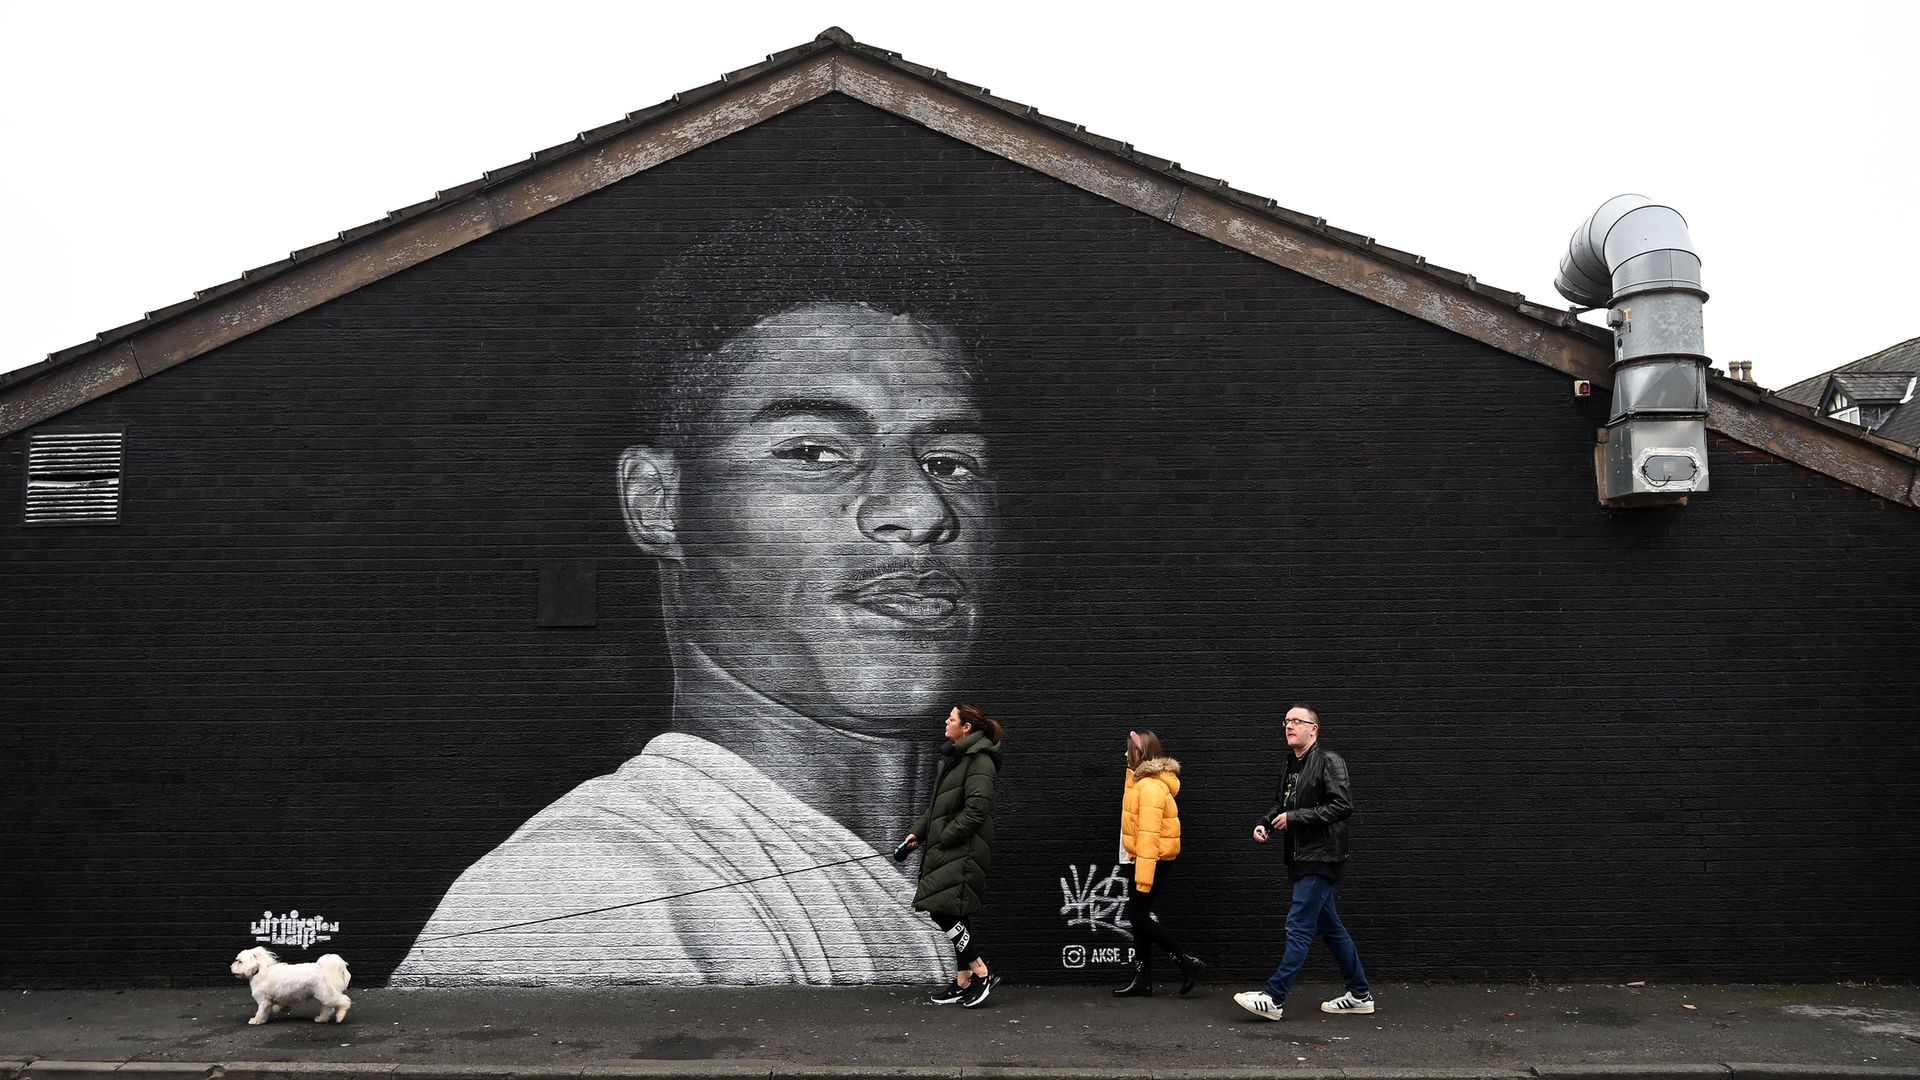 A mural by artist Akse P19 of Marcus Rashford on the side of a building in Withington, Manchester - Credit: AFP via Getty Images